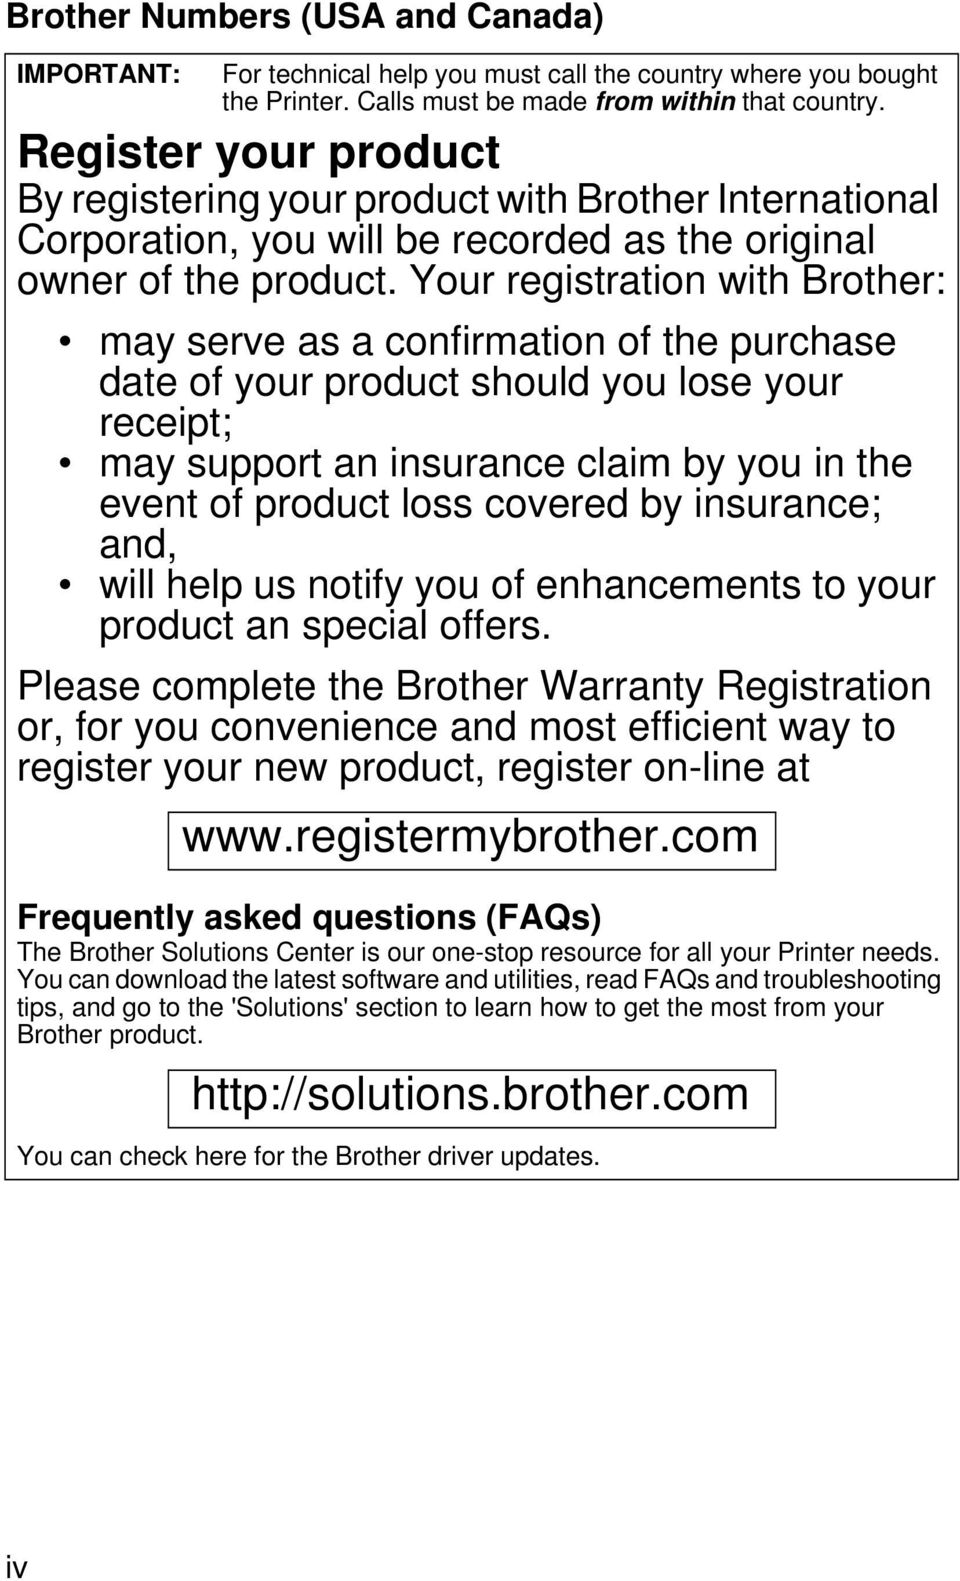 Your registration with Brother: may serve as a confirmation of the purchase date of your product should you lose your receipt; may support an insurance claim by you in the event of product loss